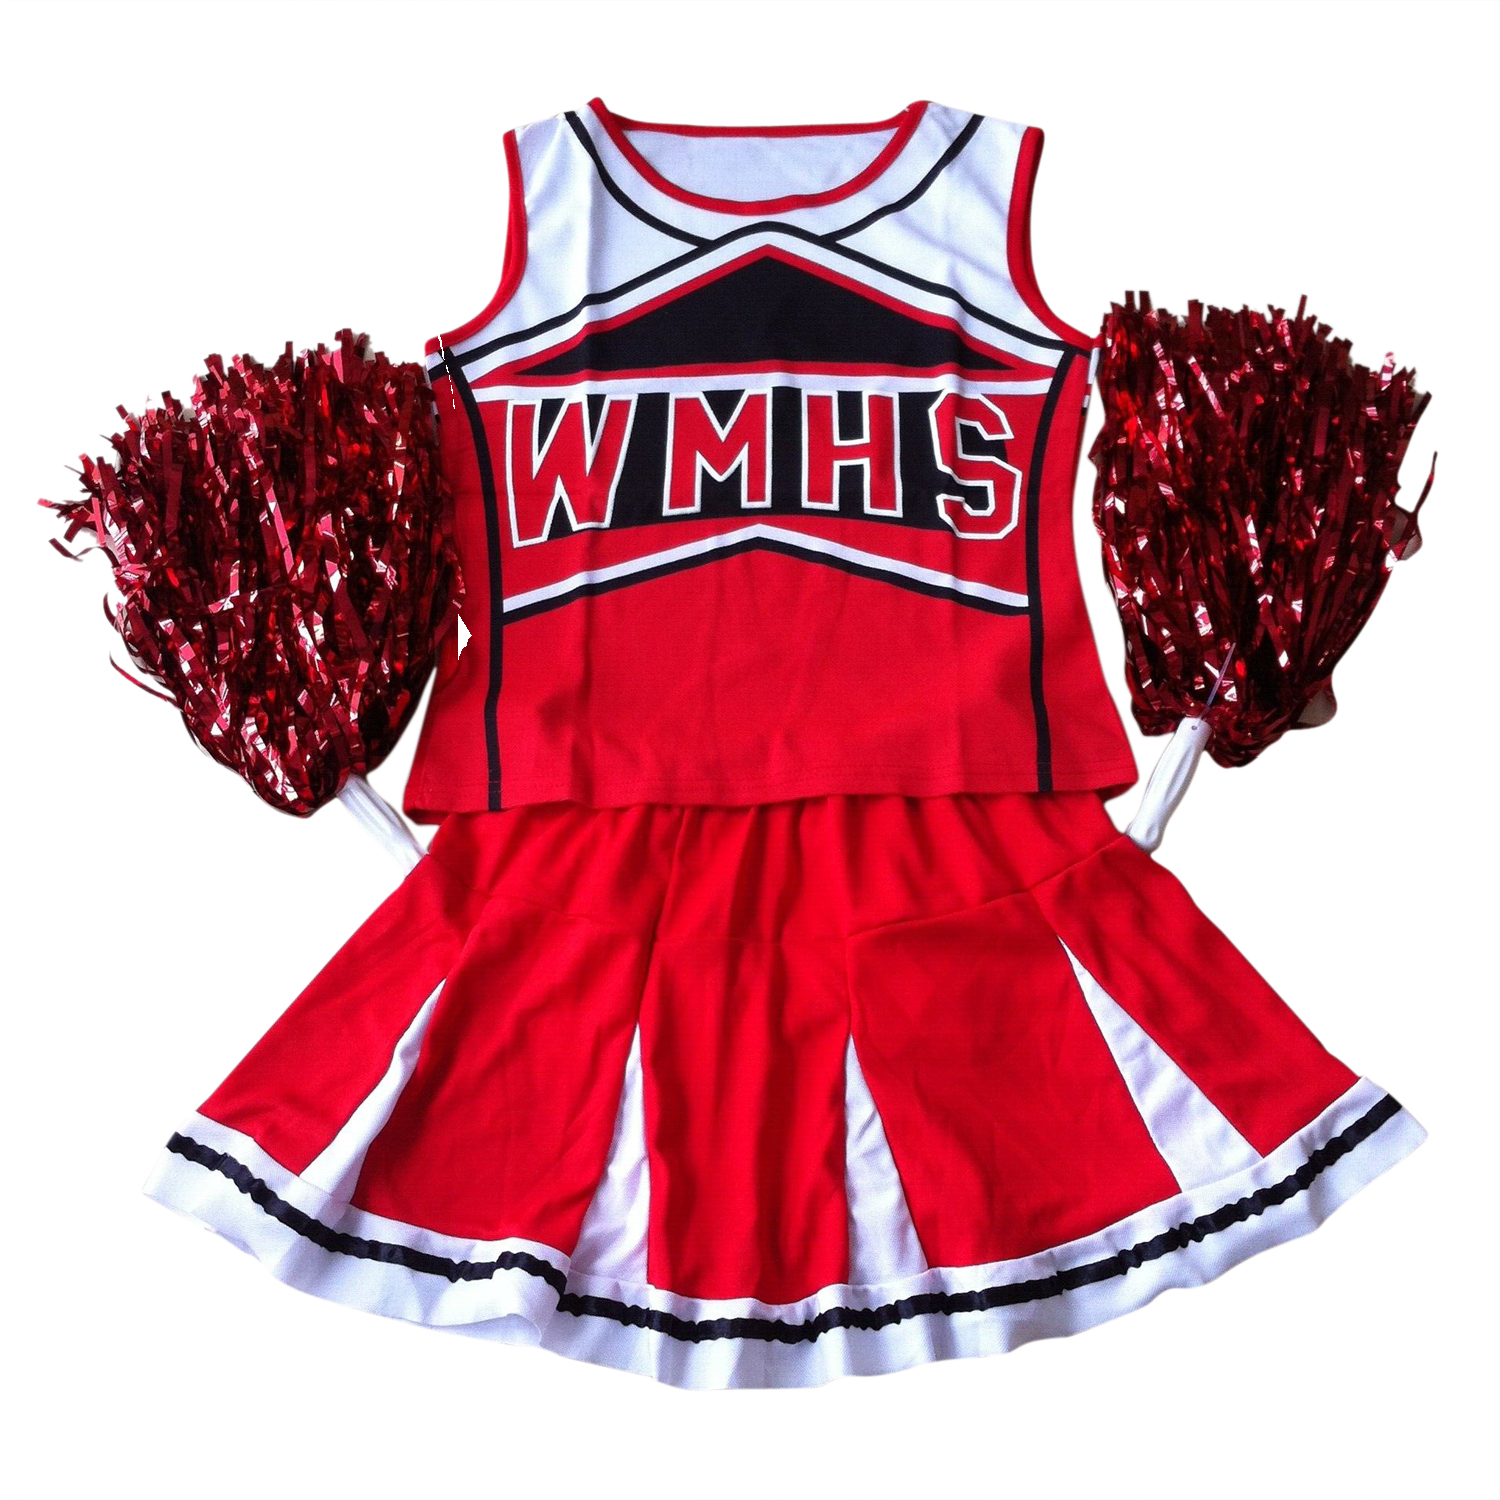 Hot Tank top Petticoat Pom cheerleader cheer leaders S (30-32) 2 piece suit new red costume ...